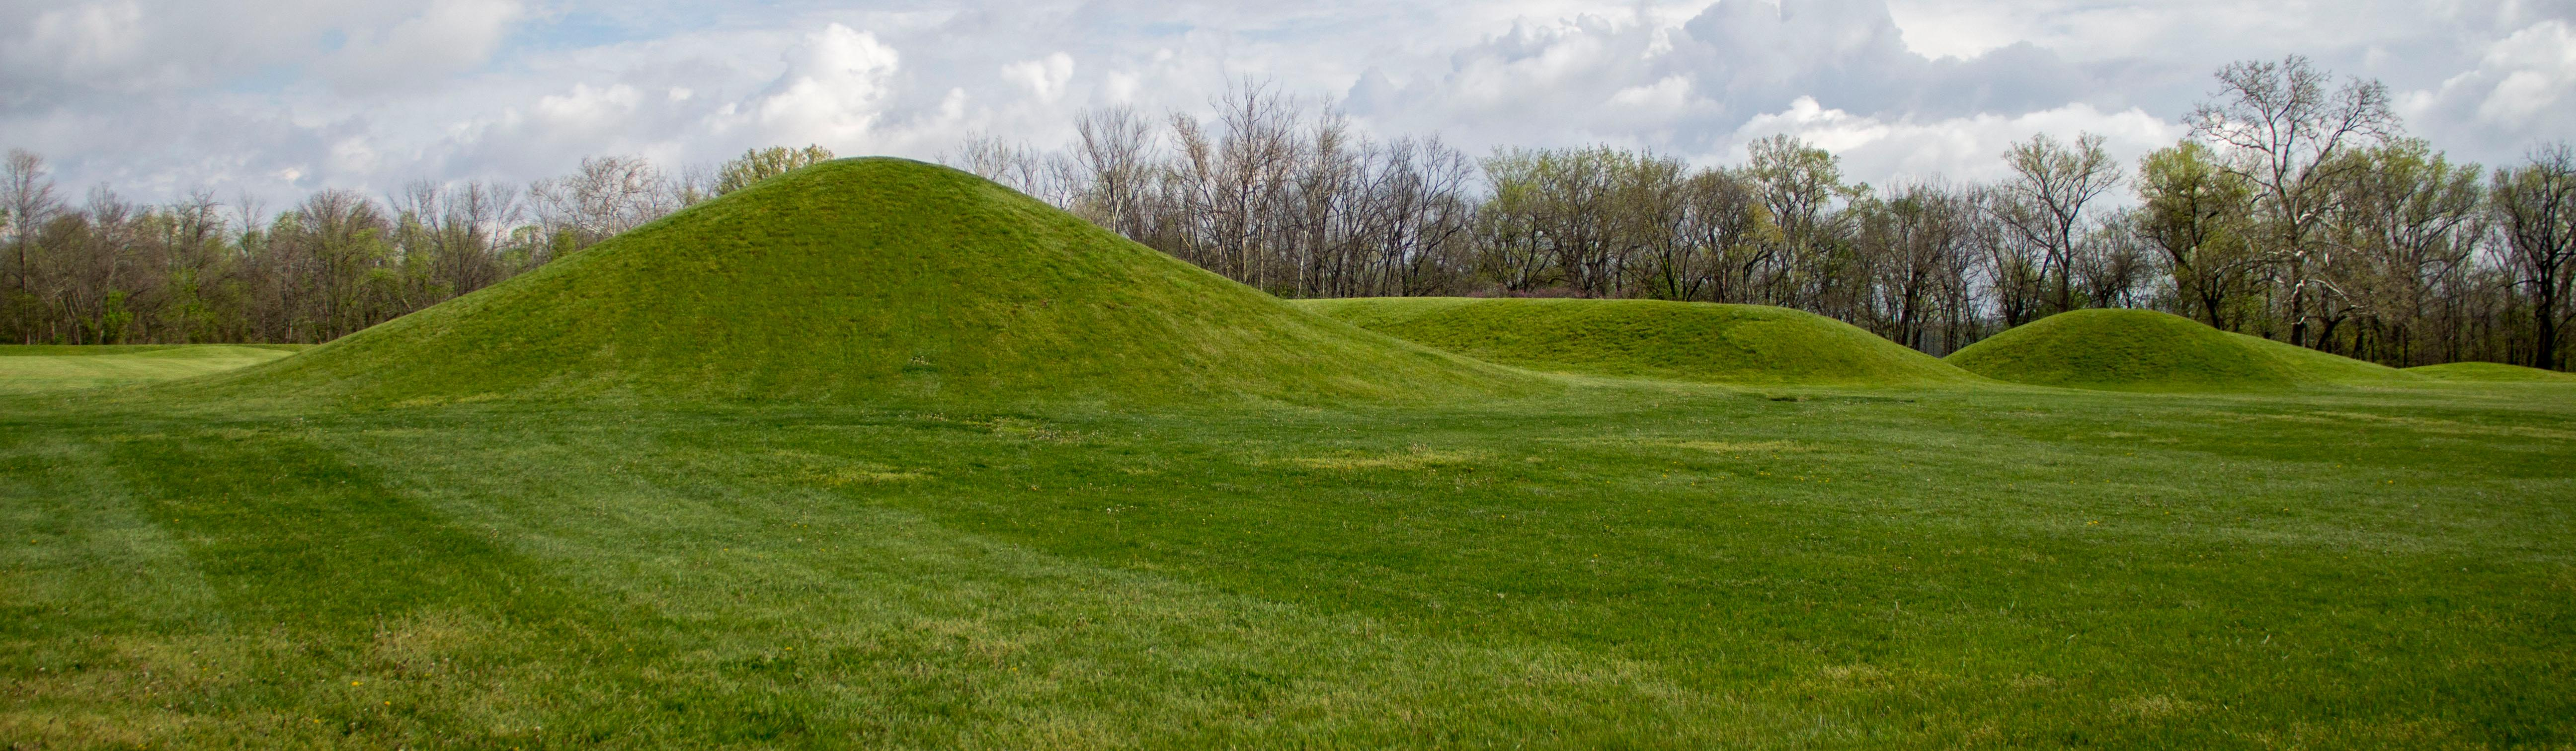 Hopewell culture national historical park u s national for Indian mound fish camp